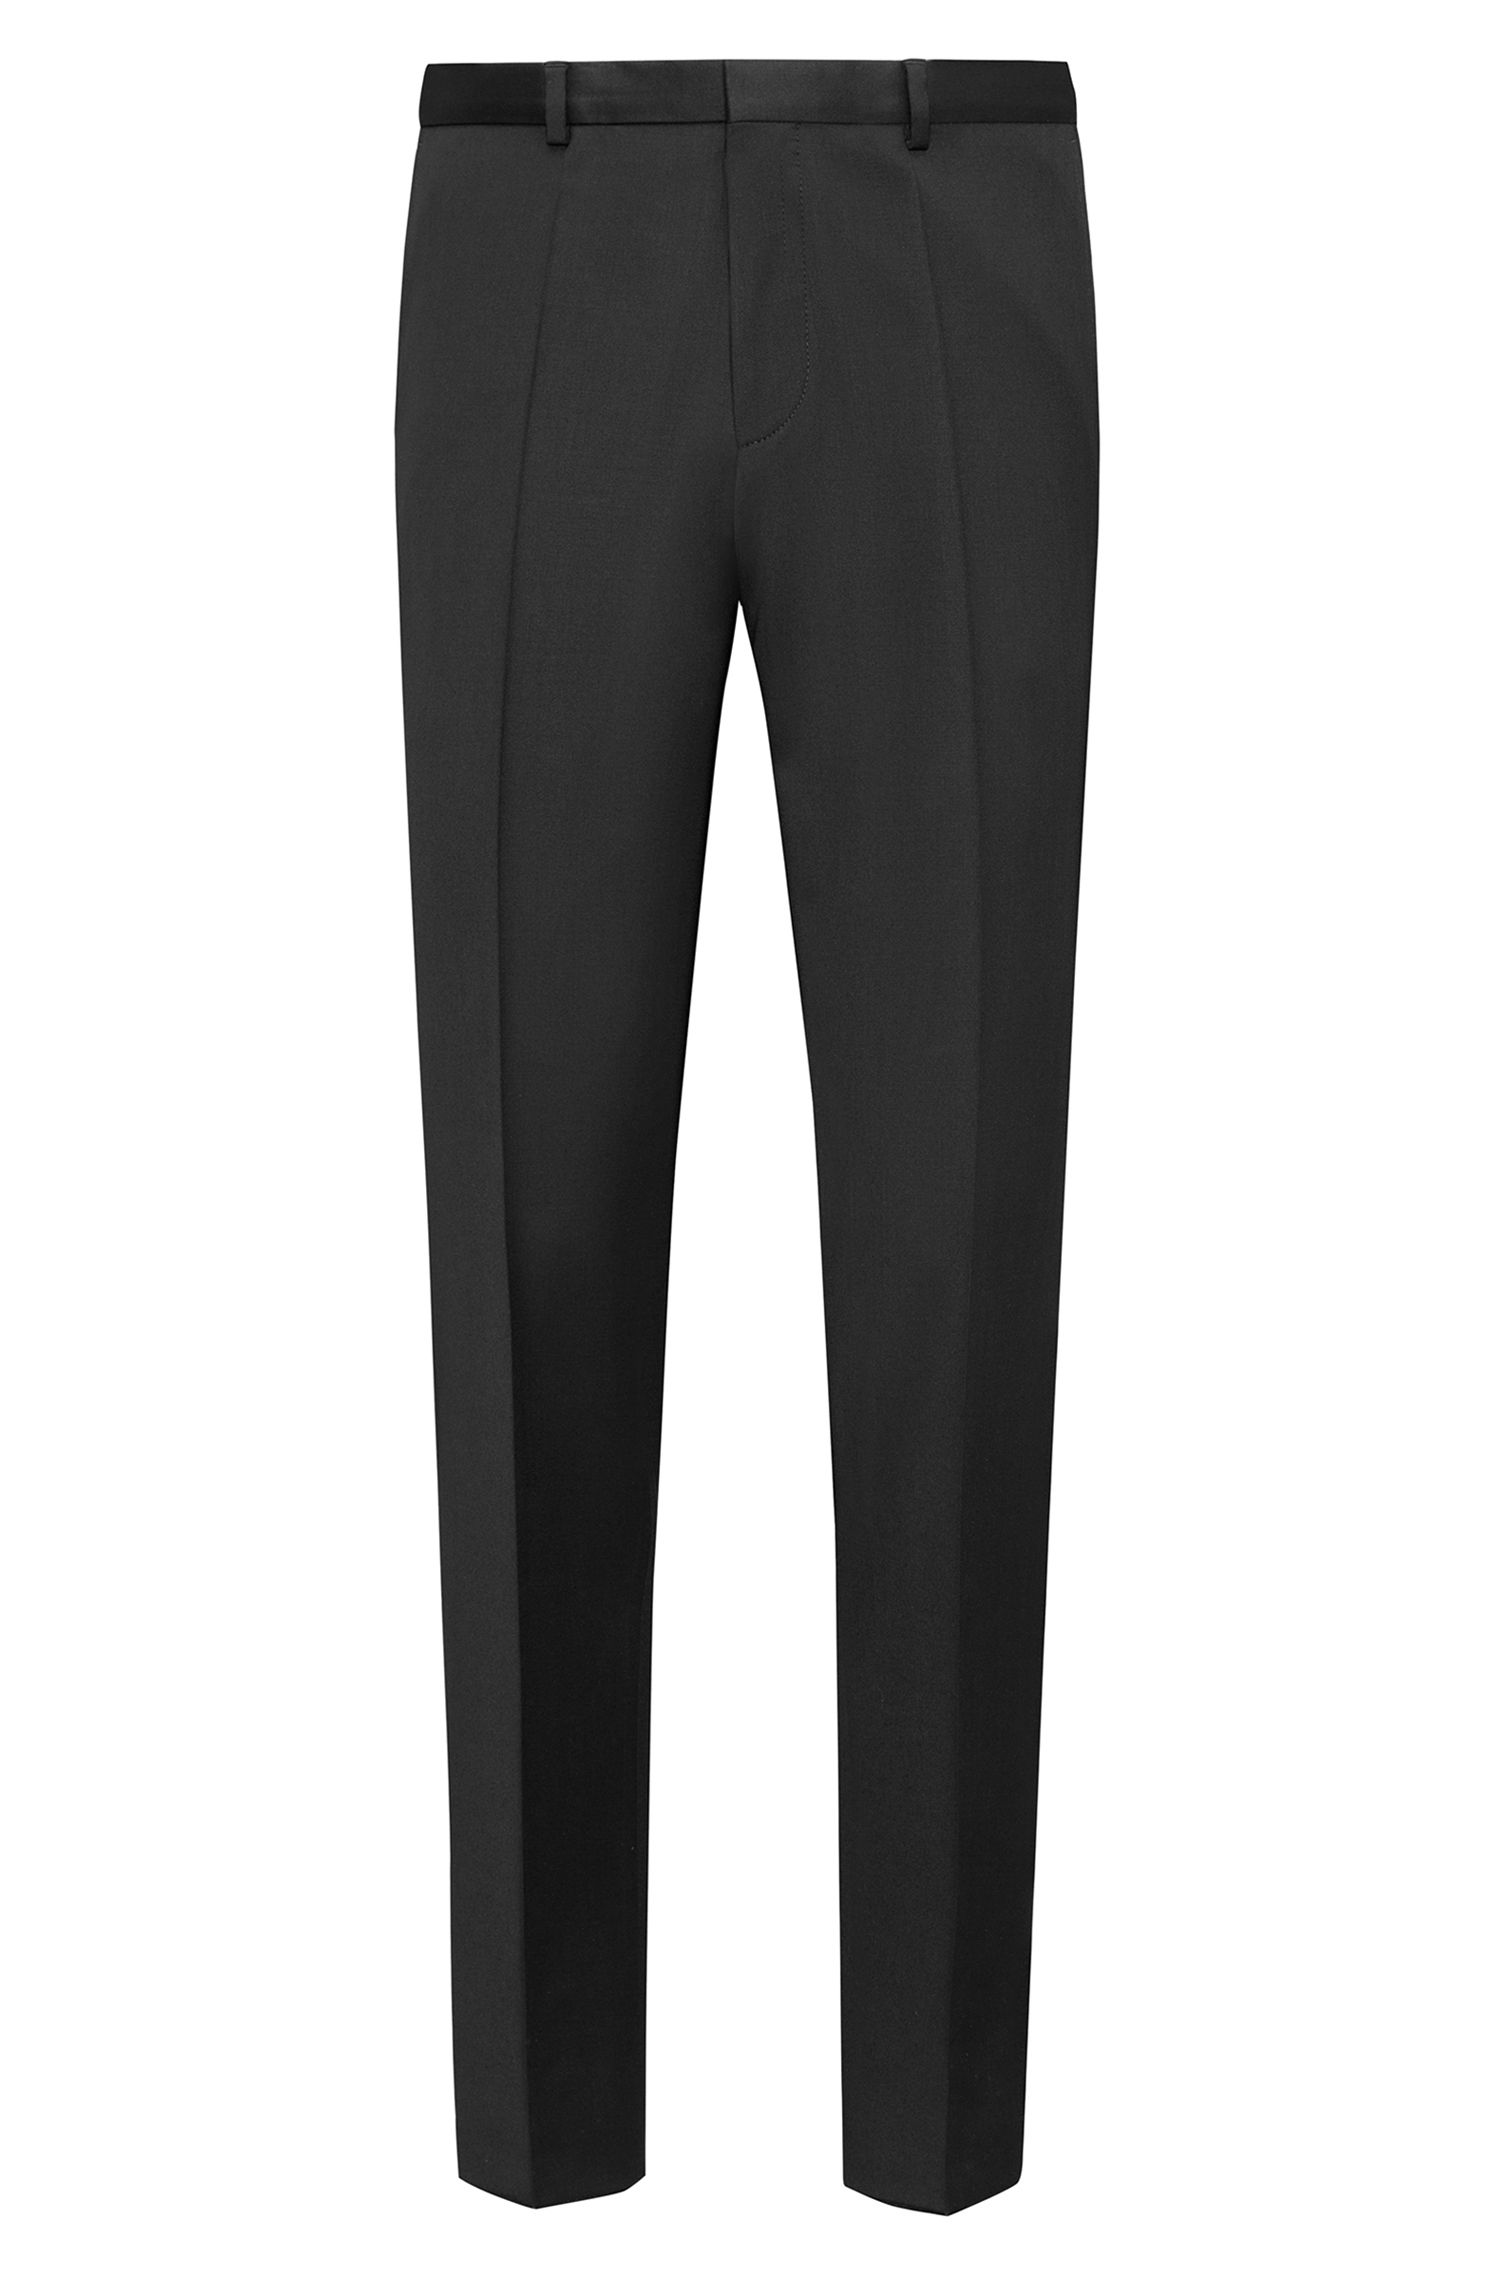 Extra-slim-fit trousers in pigment-dyed virgin wool